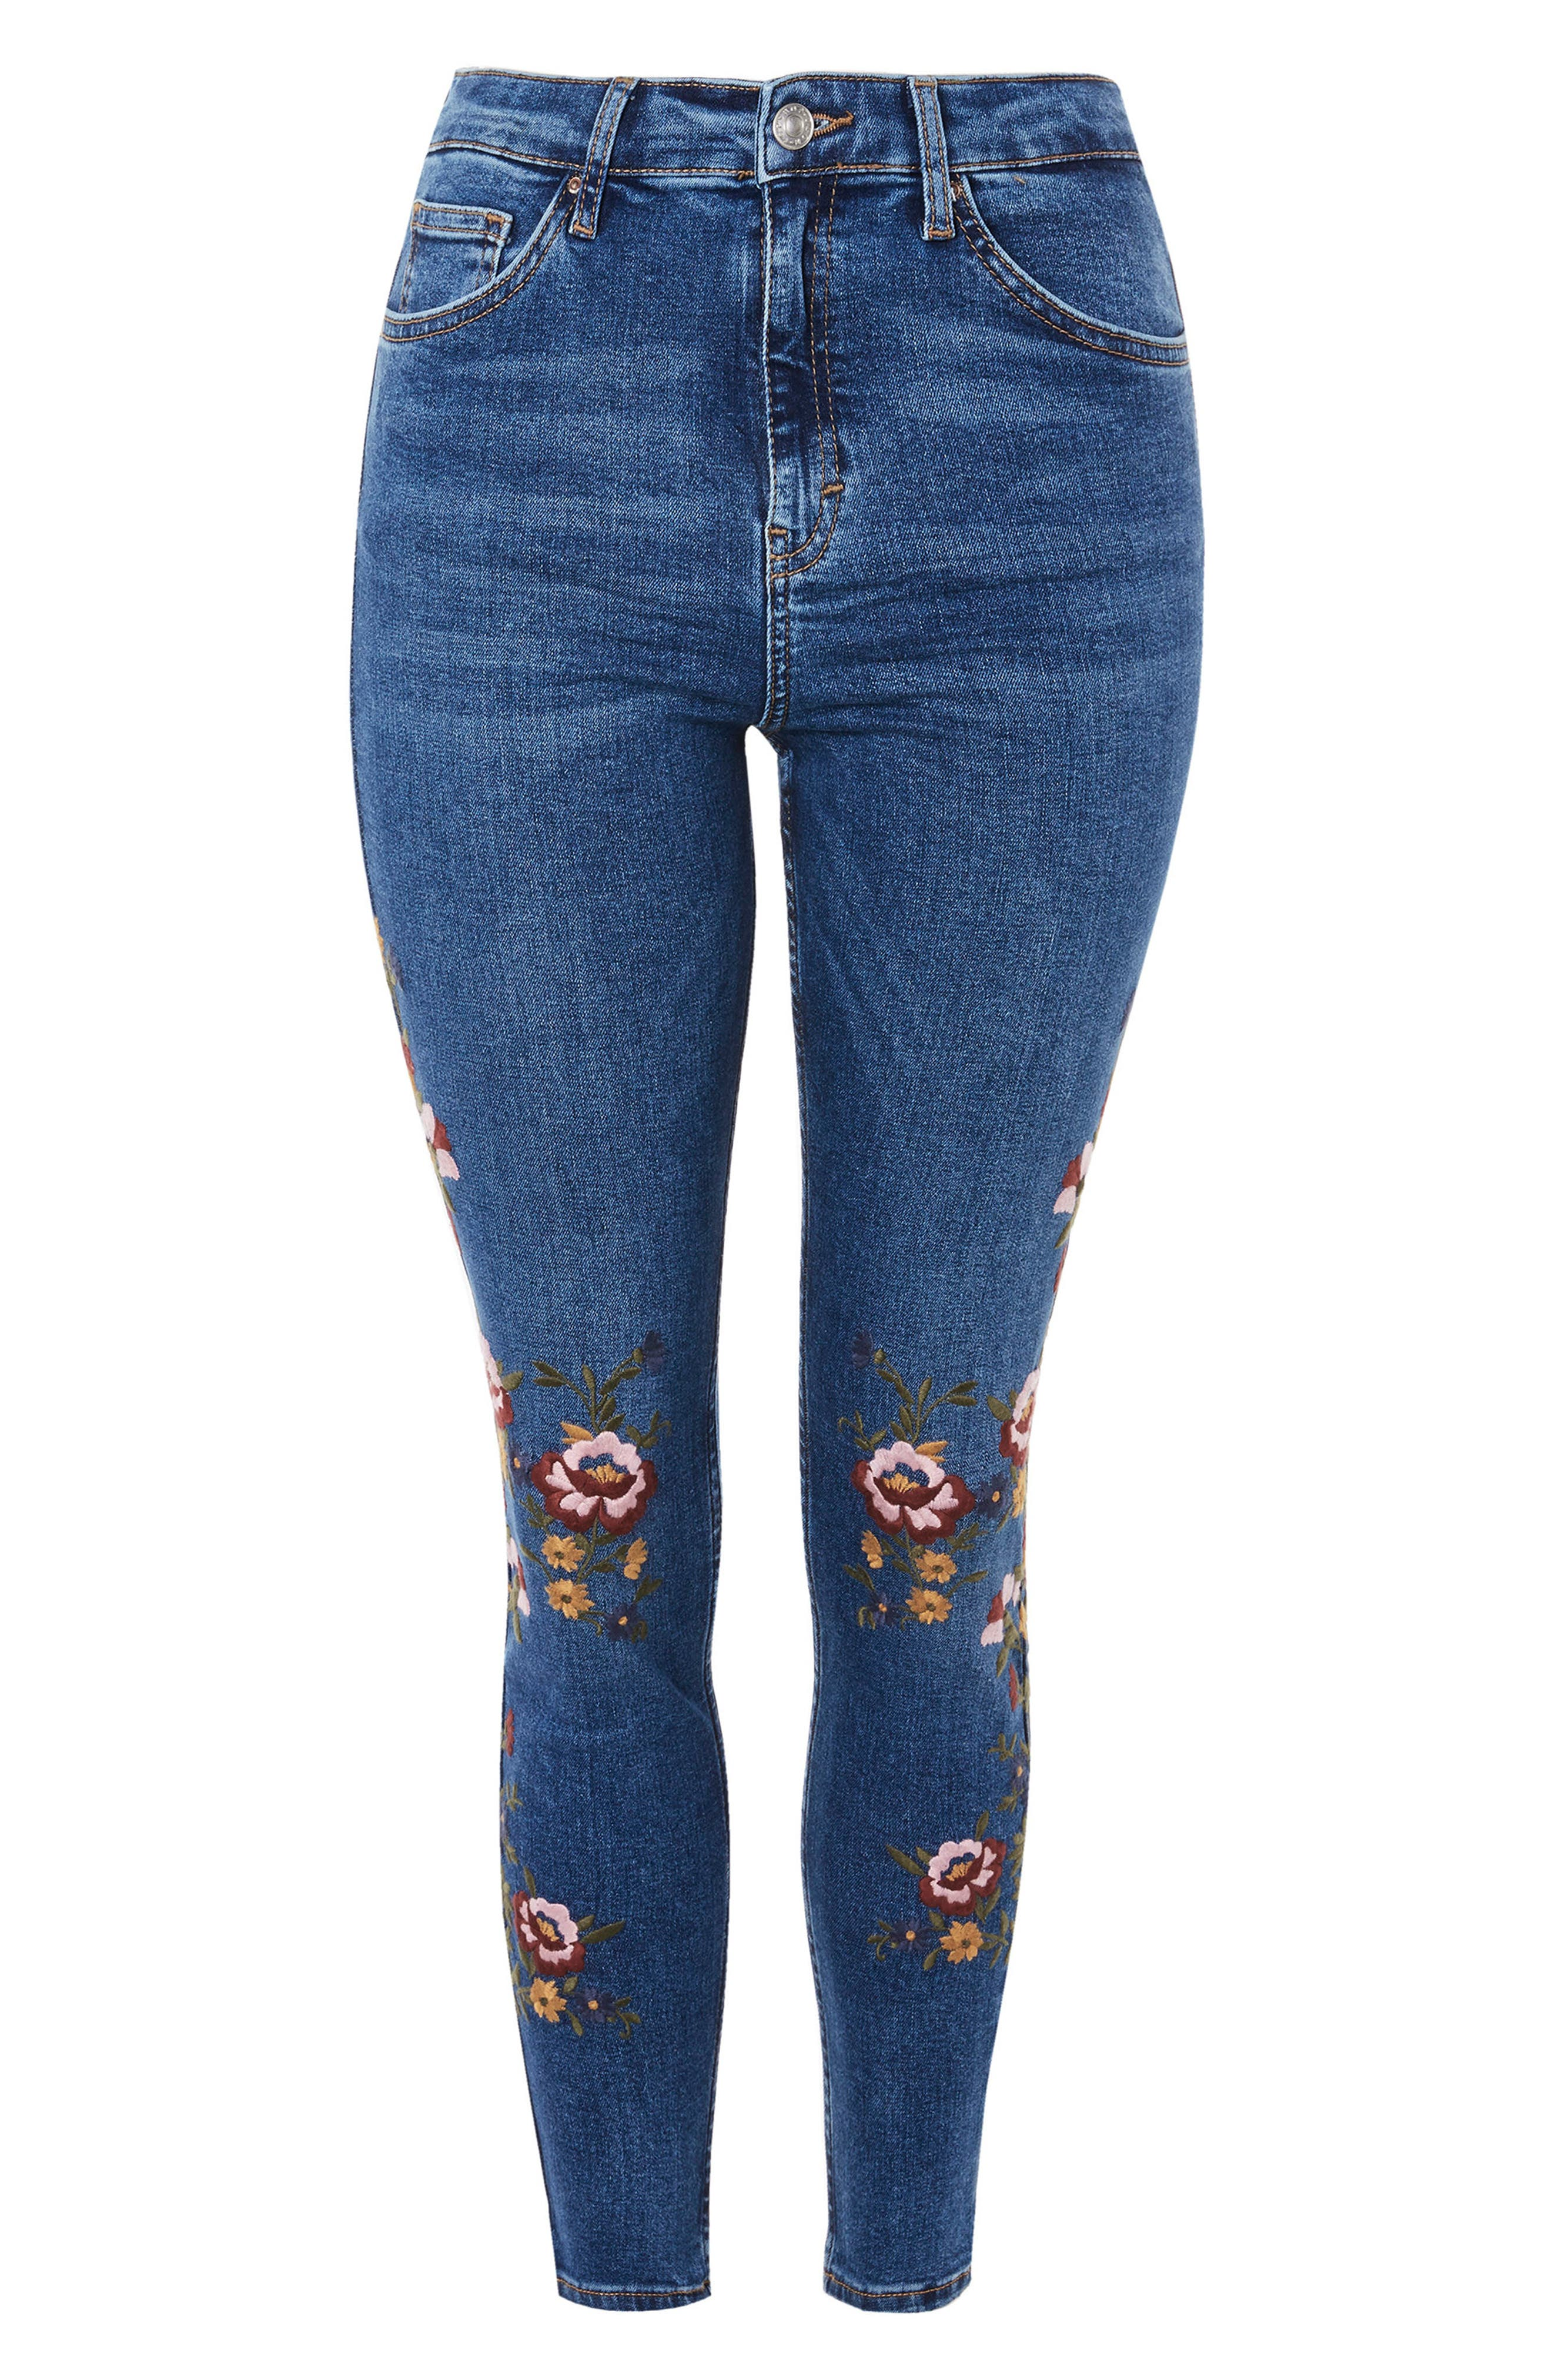 Jamie Ditsy Floral Jeans,                             Alternate thumbnail 4, color,                             420